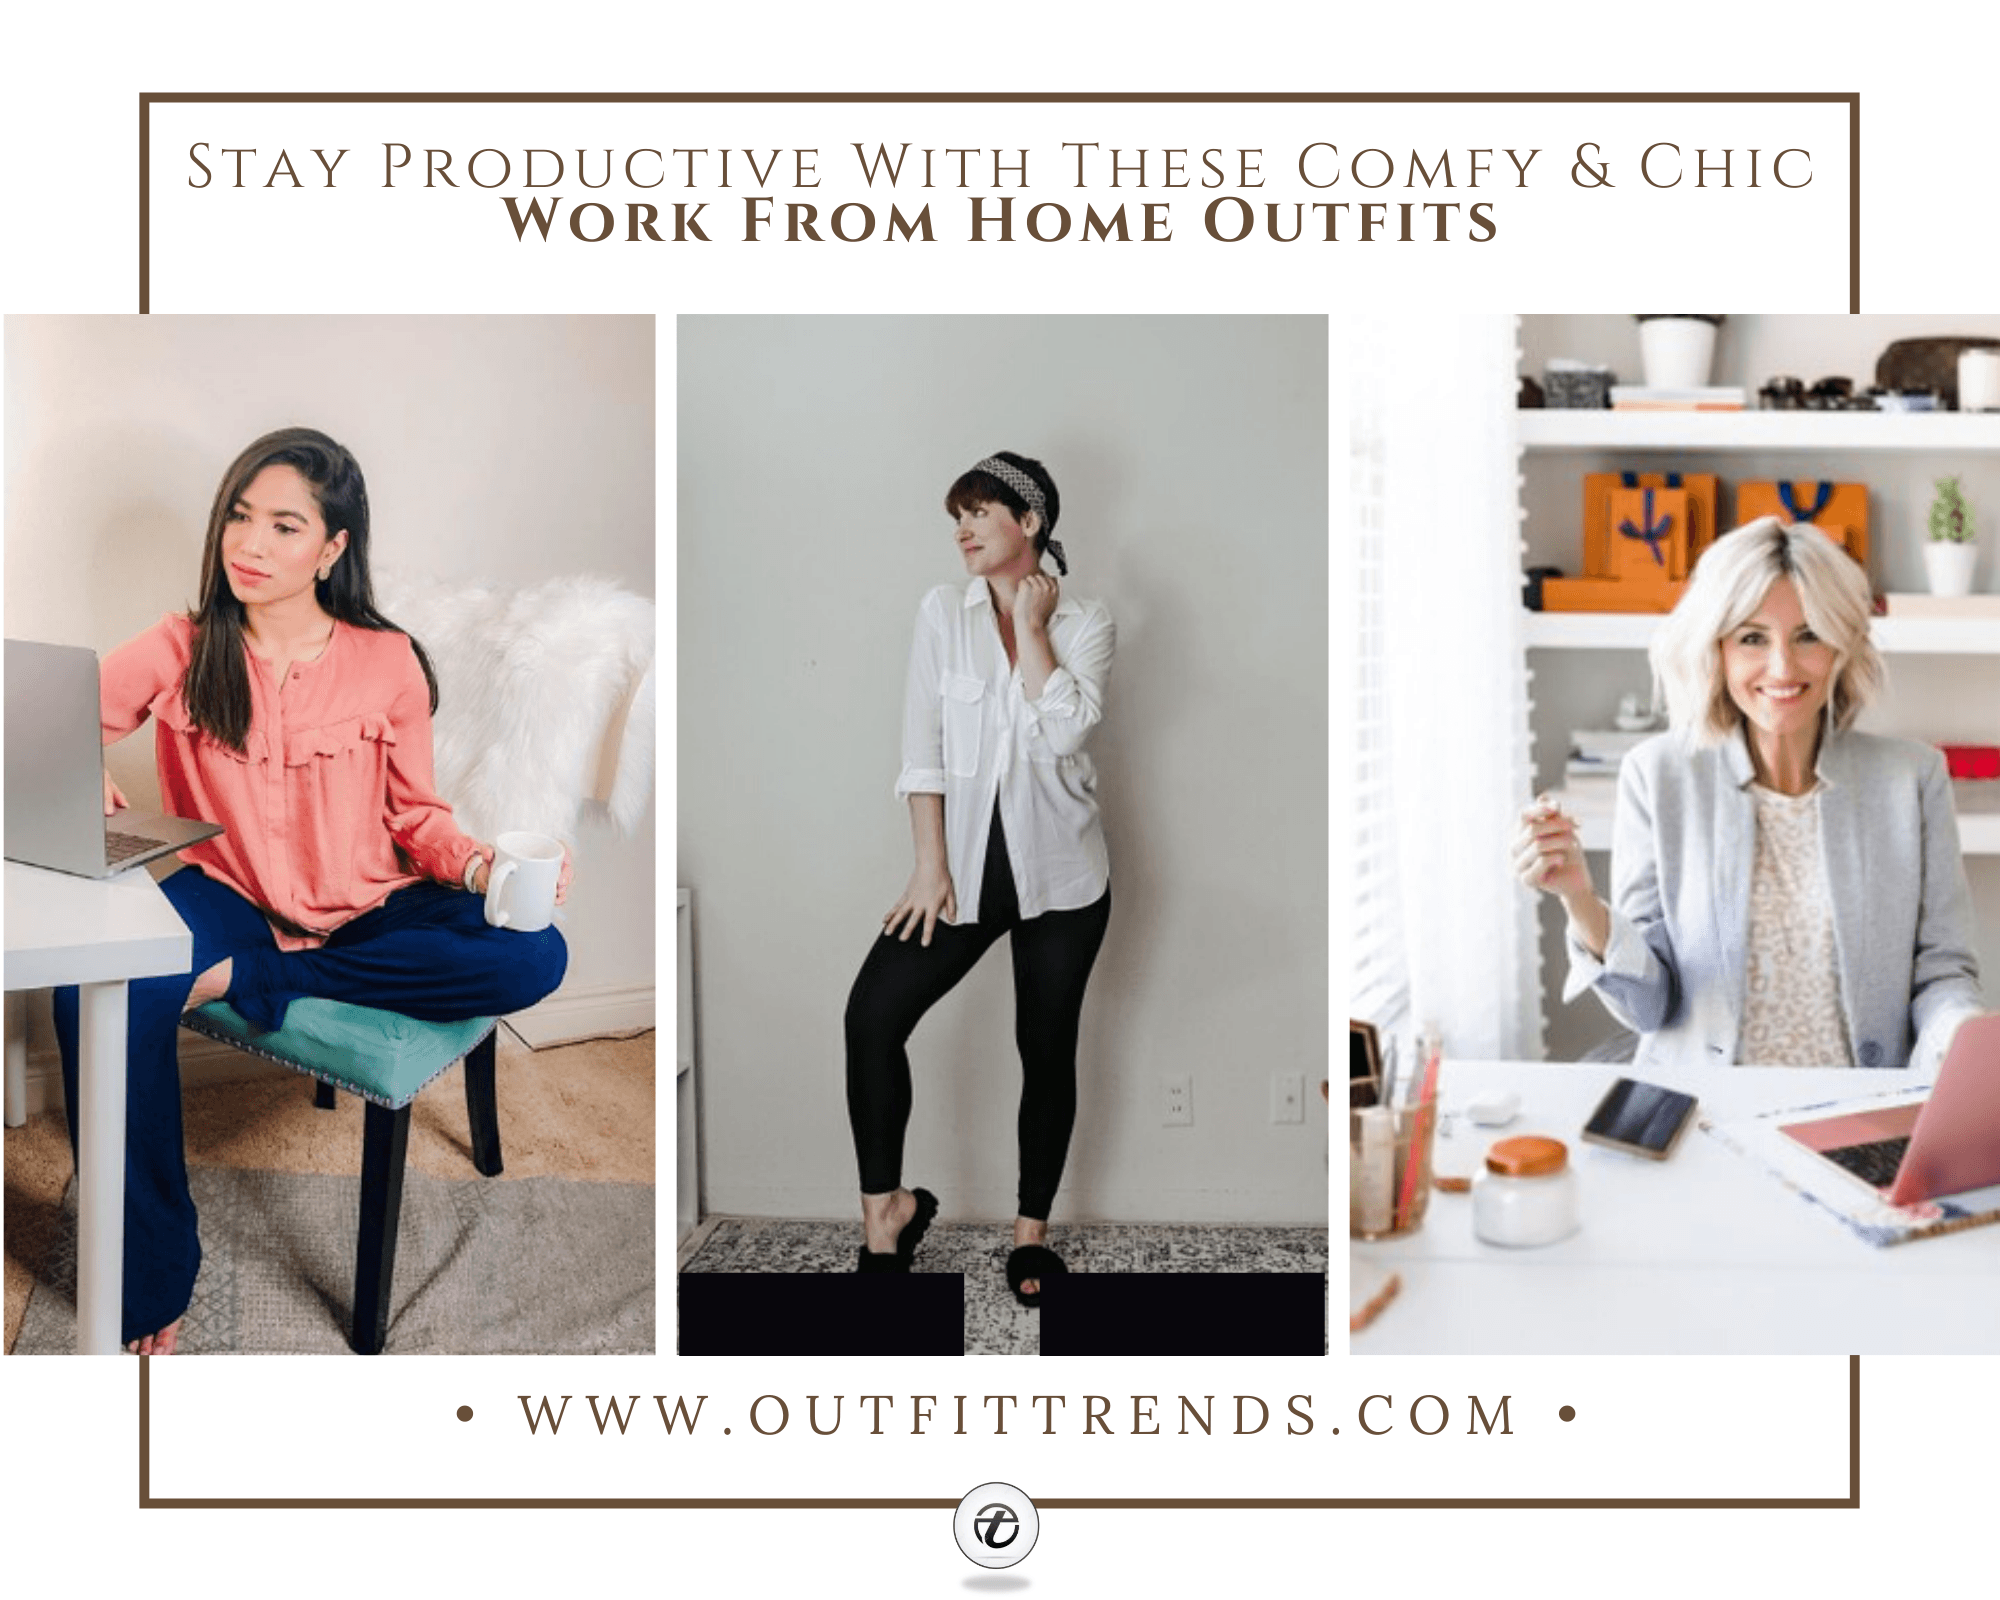 17 Work From Home Outfits For 2021 That Are Comfy Chic